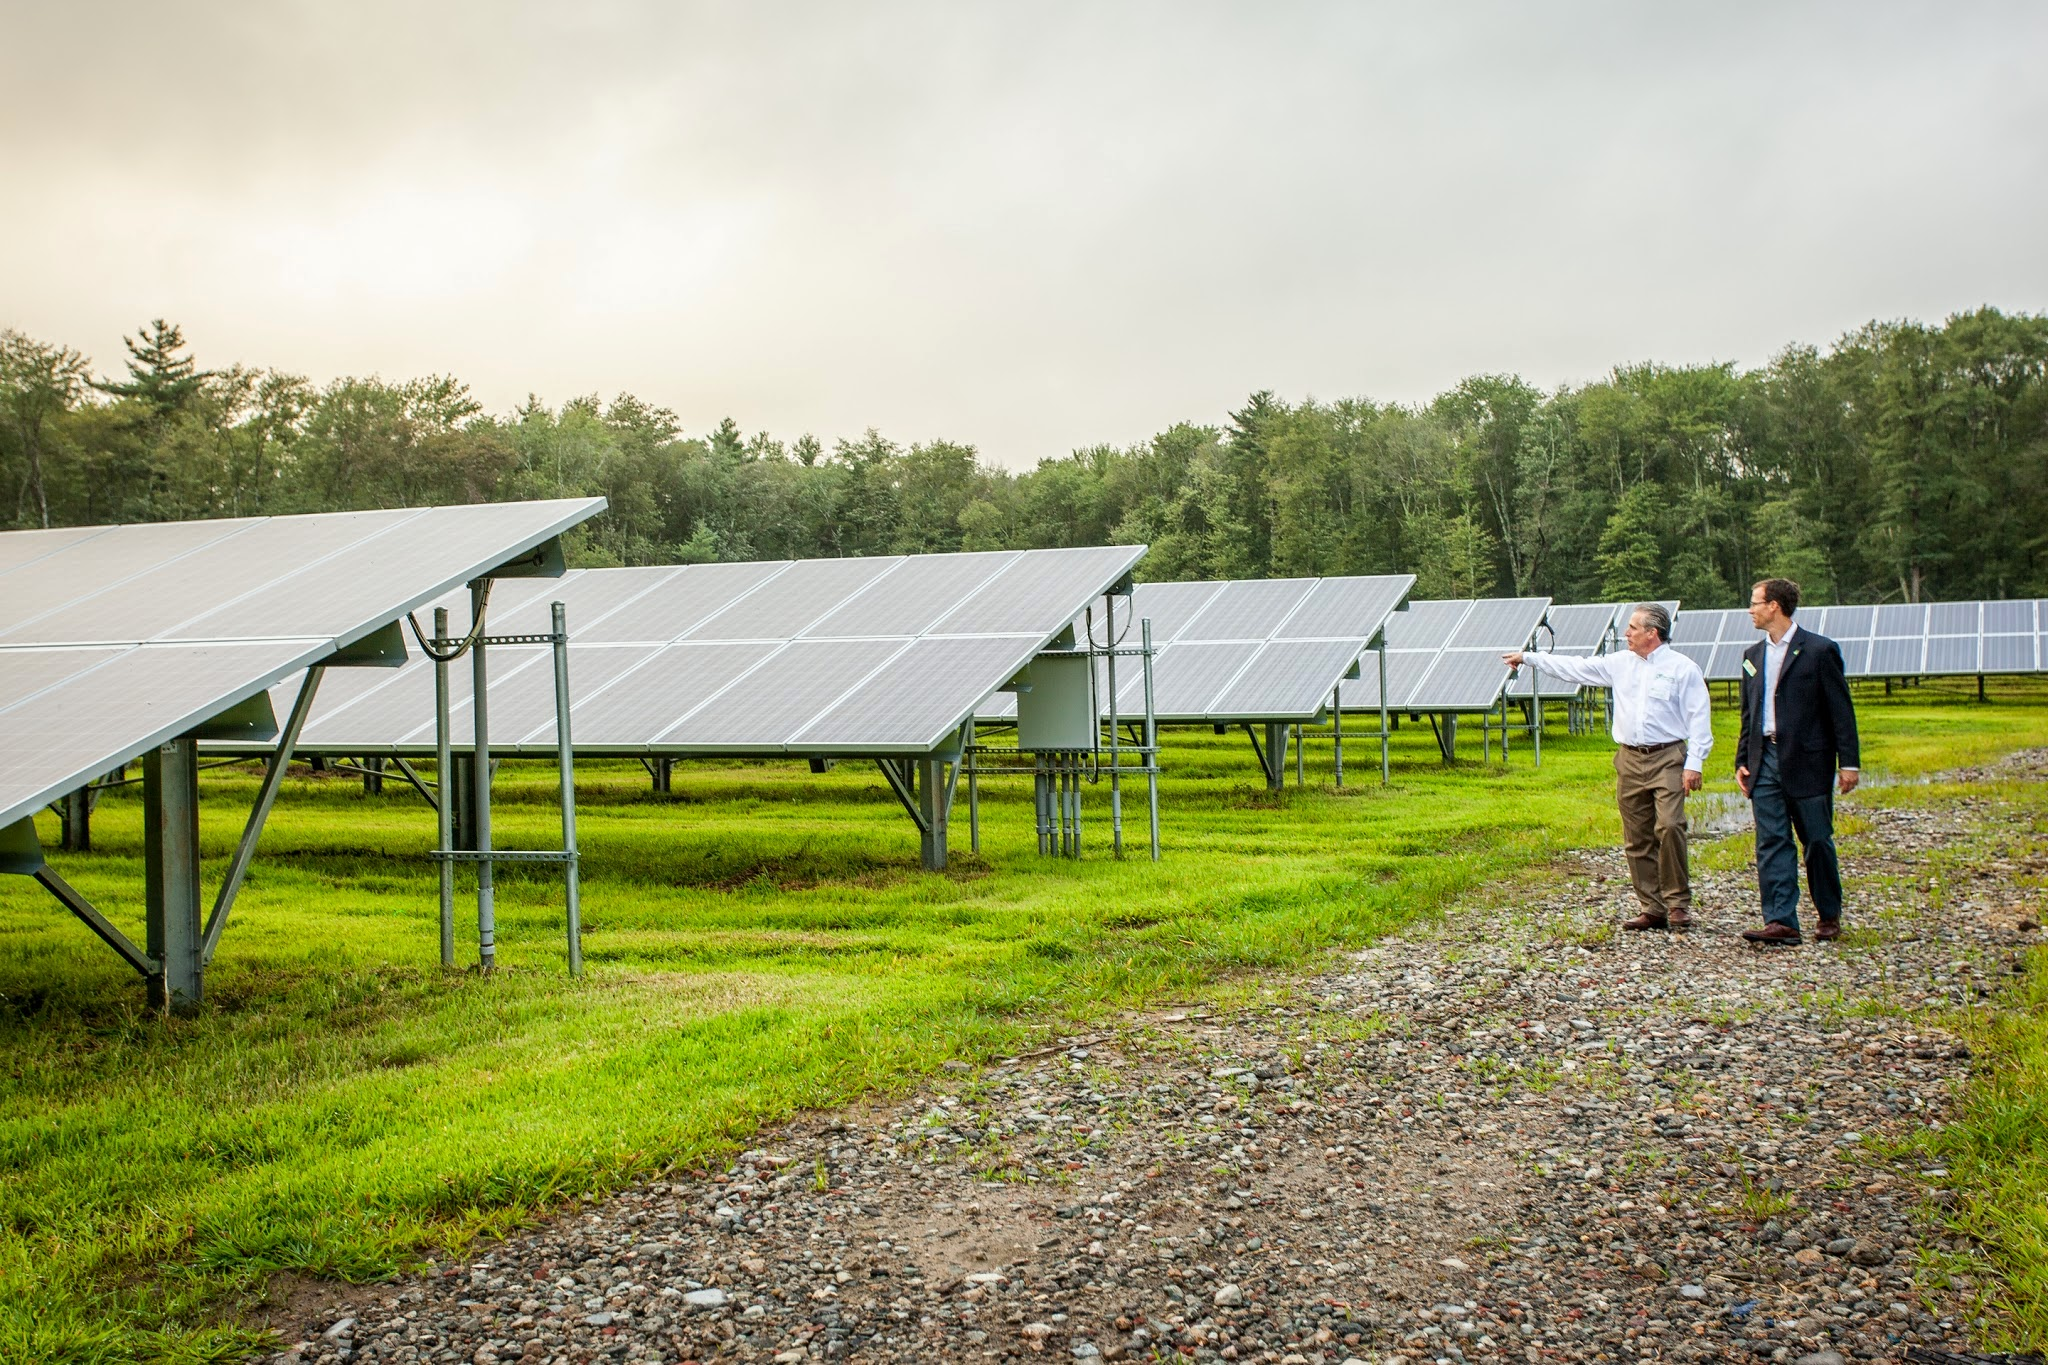 Complaints persist even as shared solar (finally) nears finish line